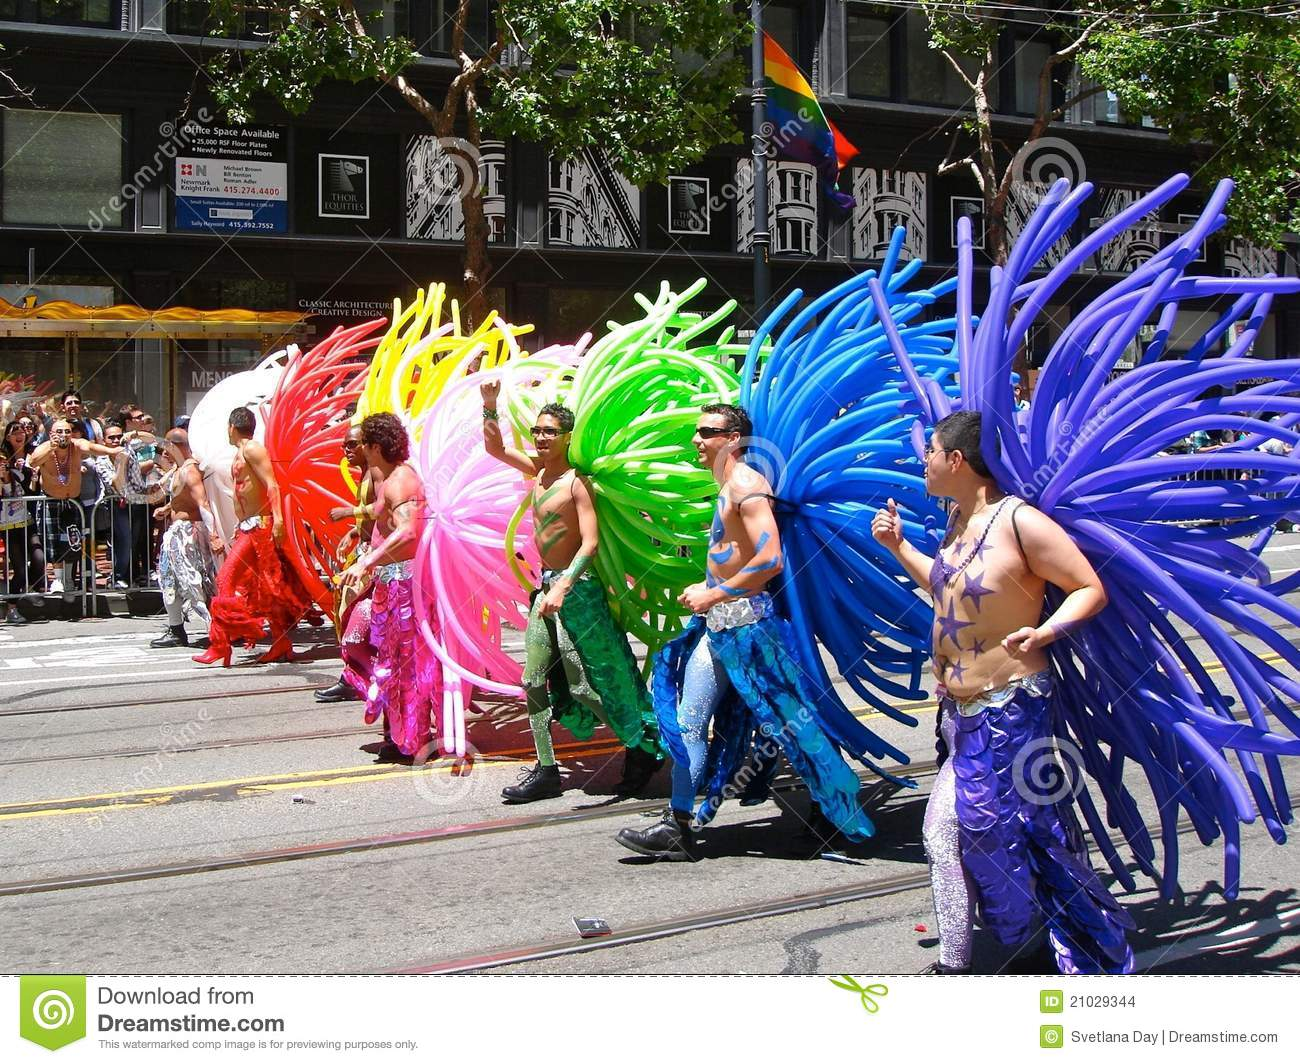 thumbs.dreamstime.com/z/gay-pride-san-francisco-rainbow-balloon-costumes-21029344.jpg